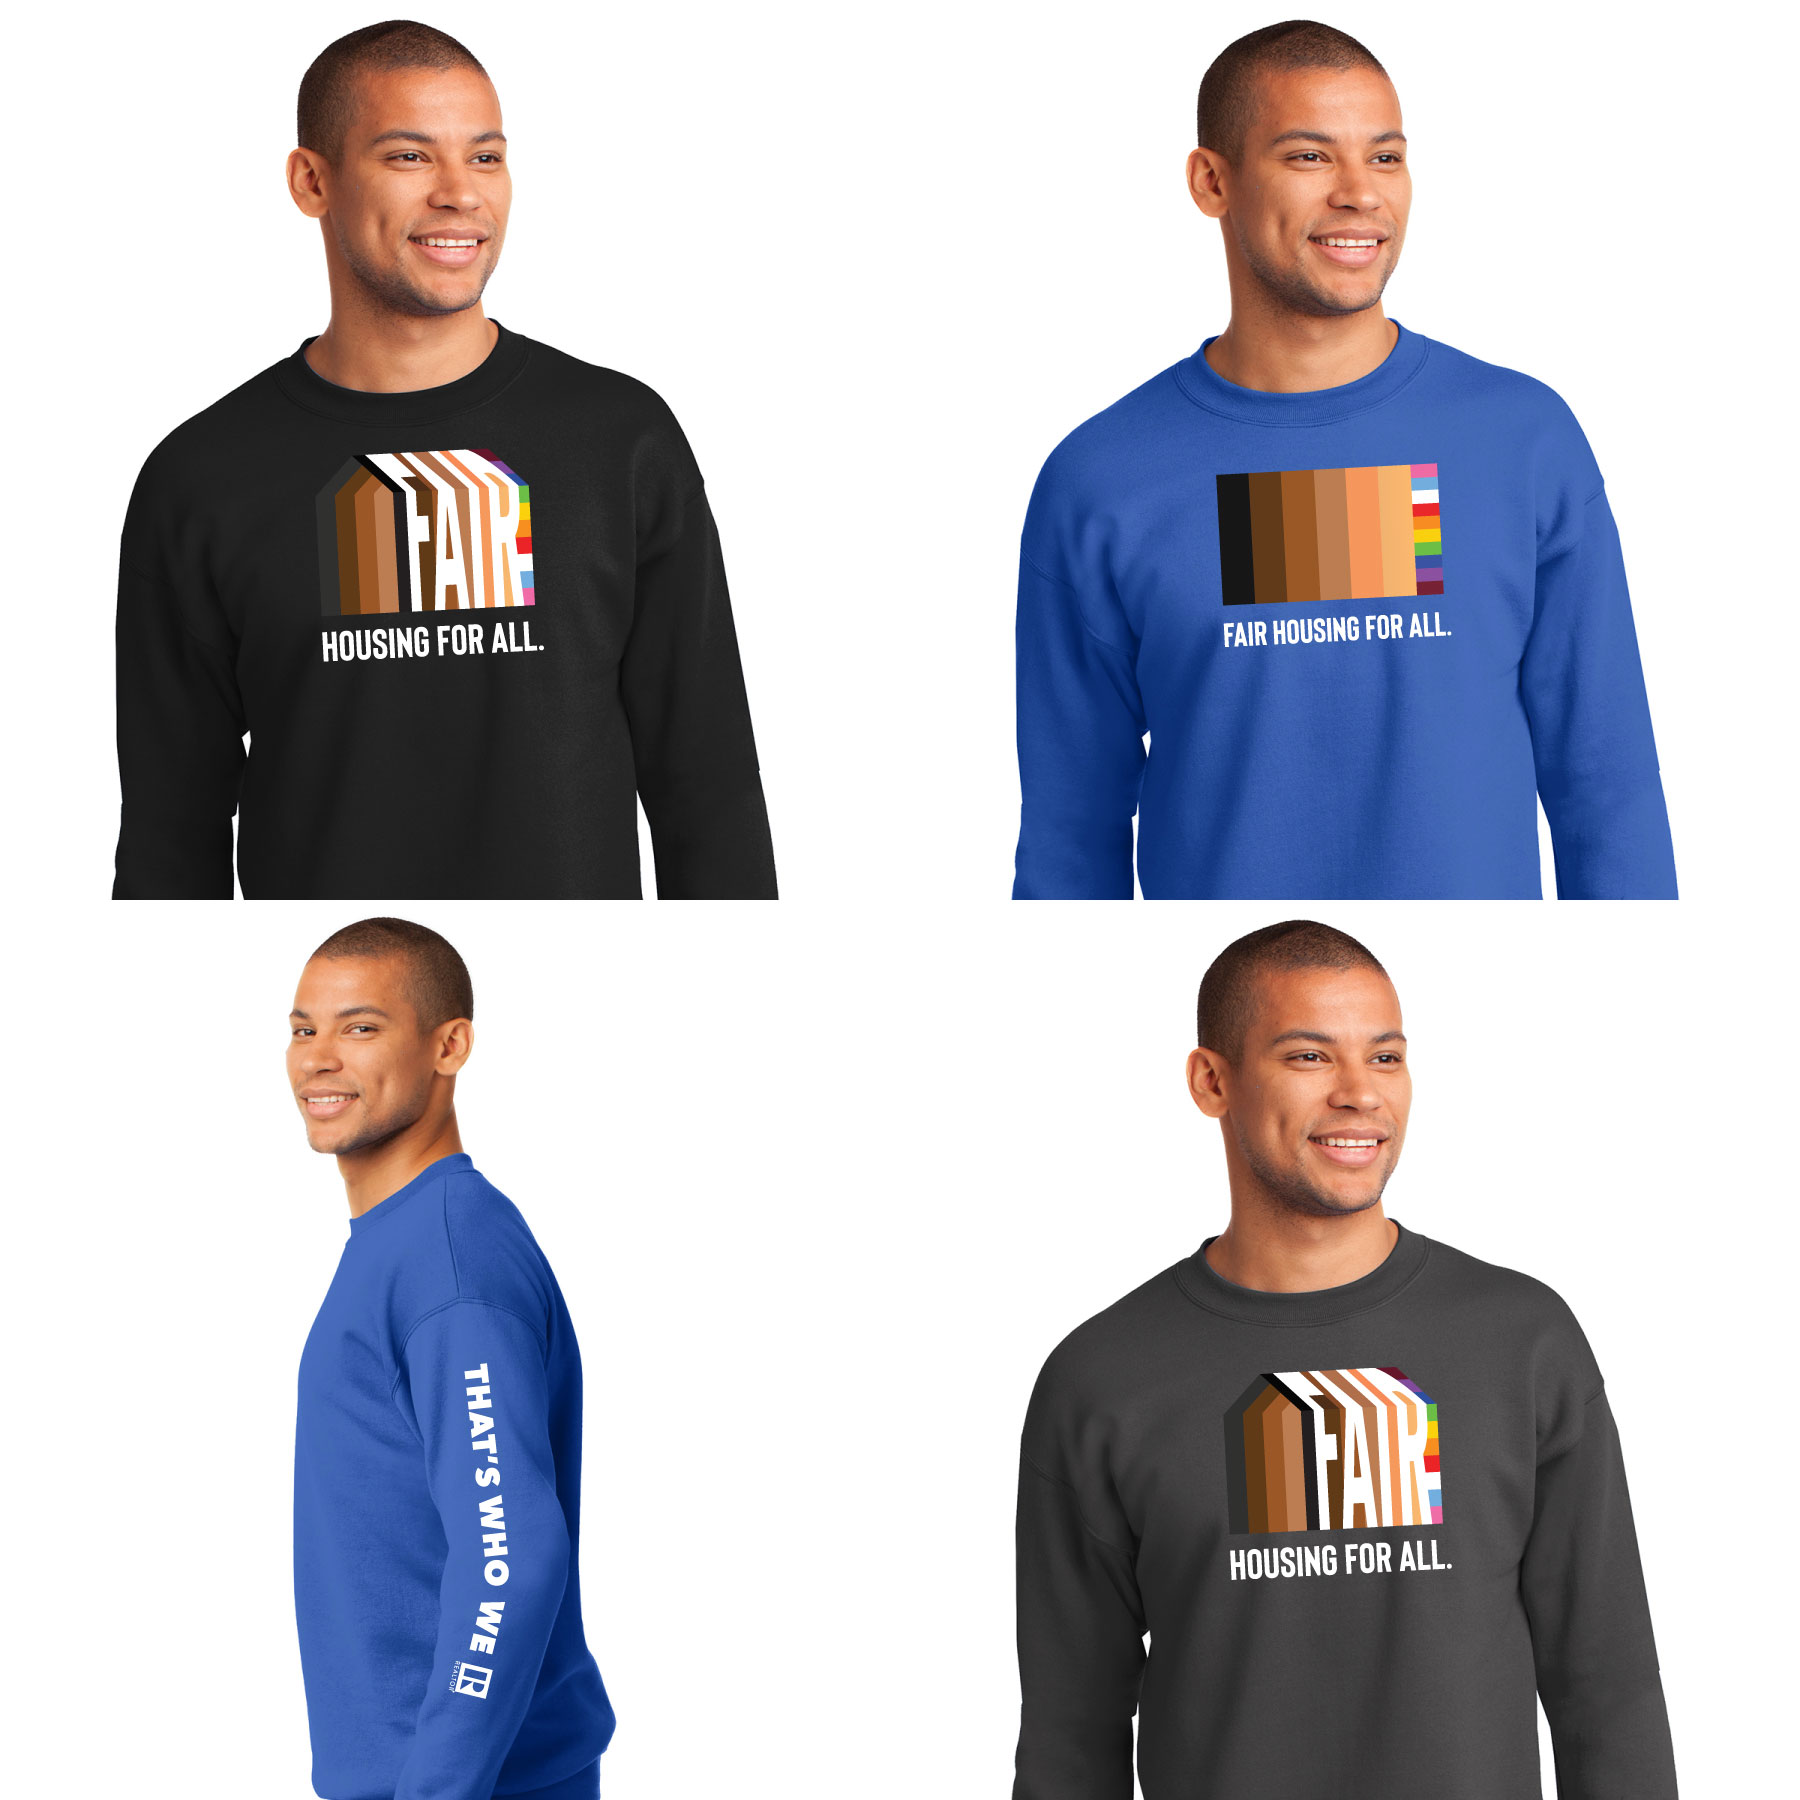 Fair Housing Crewneck Sweatshirt Fairs,Housings,FairHousings,Houses,Equity,Equality,FH,Sweats